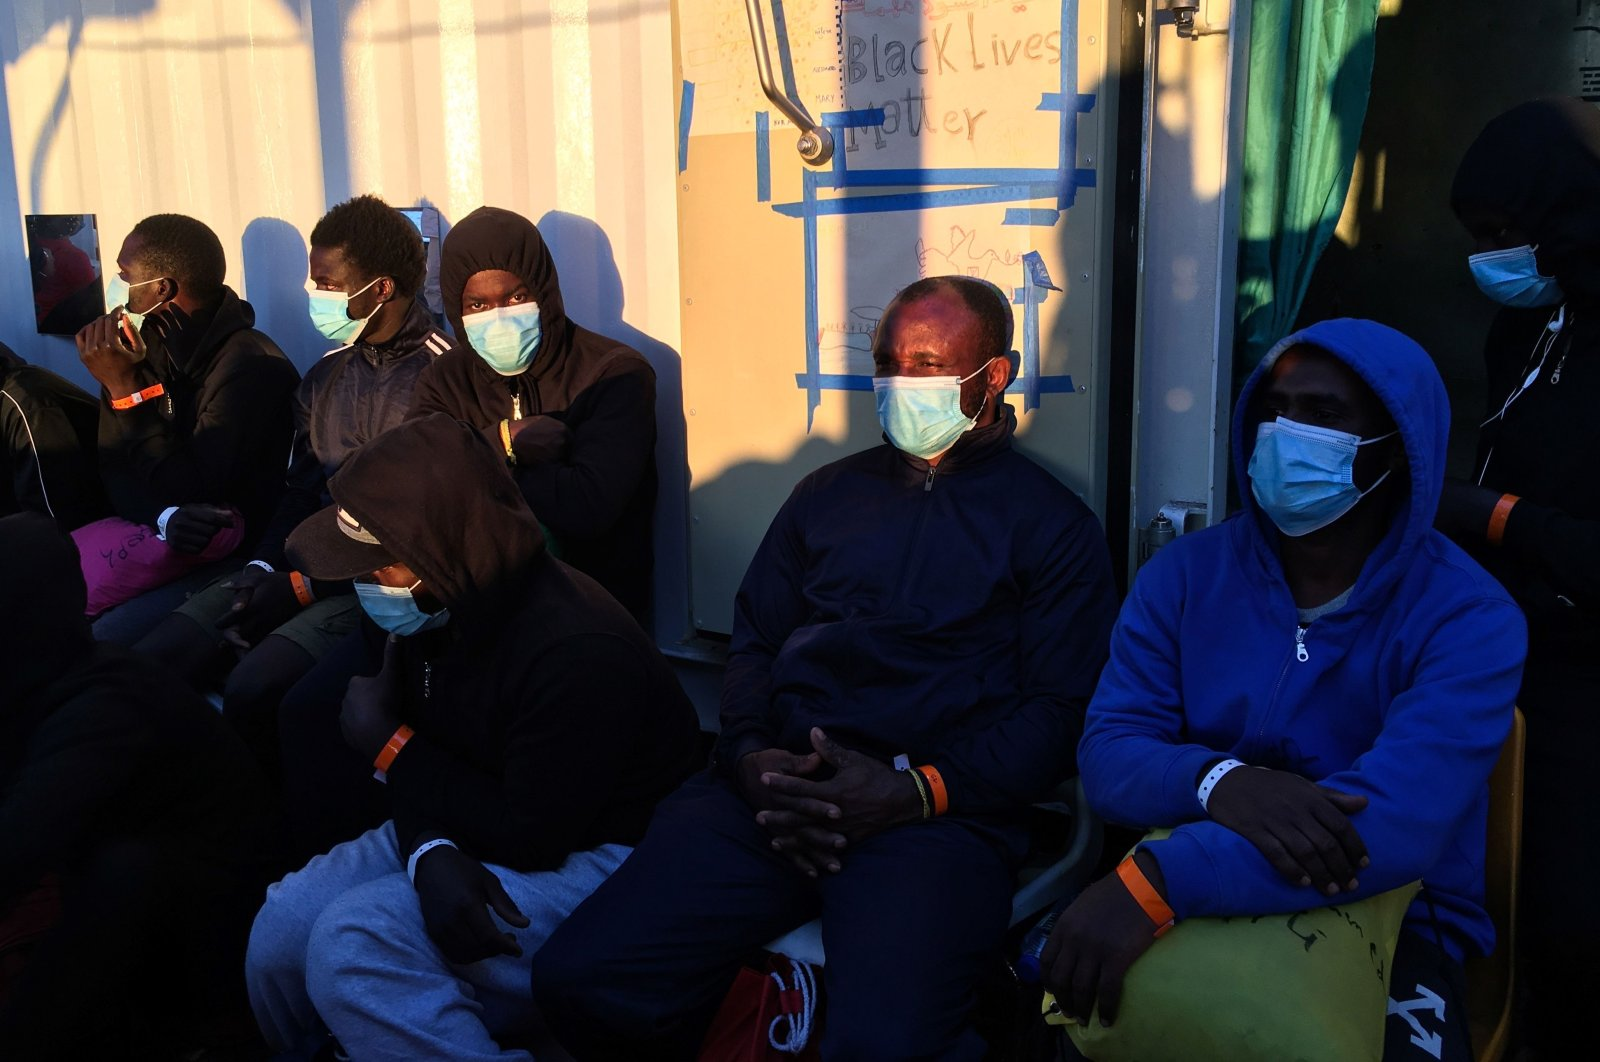 Migrants wearing protective facemasks on board of the humanitarian aid boat Ocean Viking, chartered by charity group SOS Mediterranee, prepare to disembark upon their arrival on July 6, 2020.